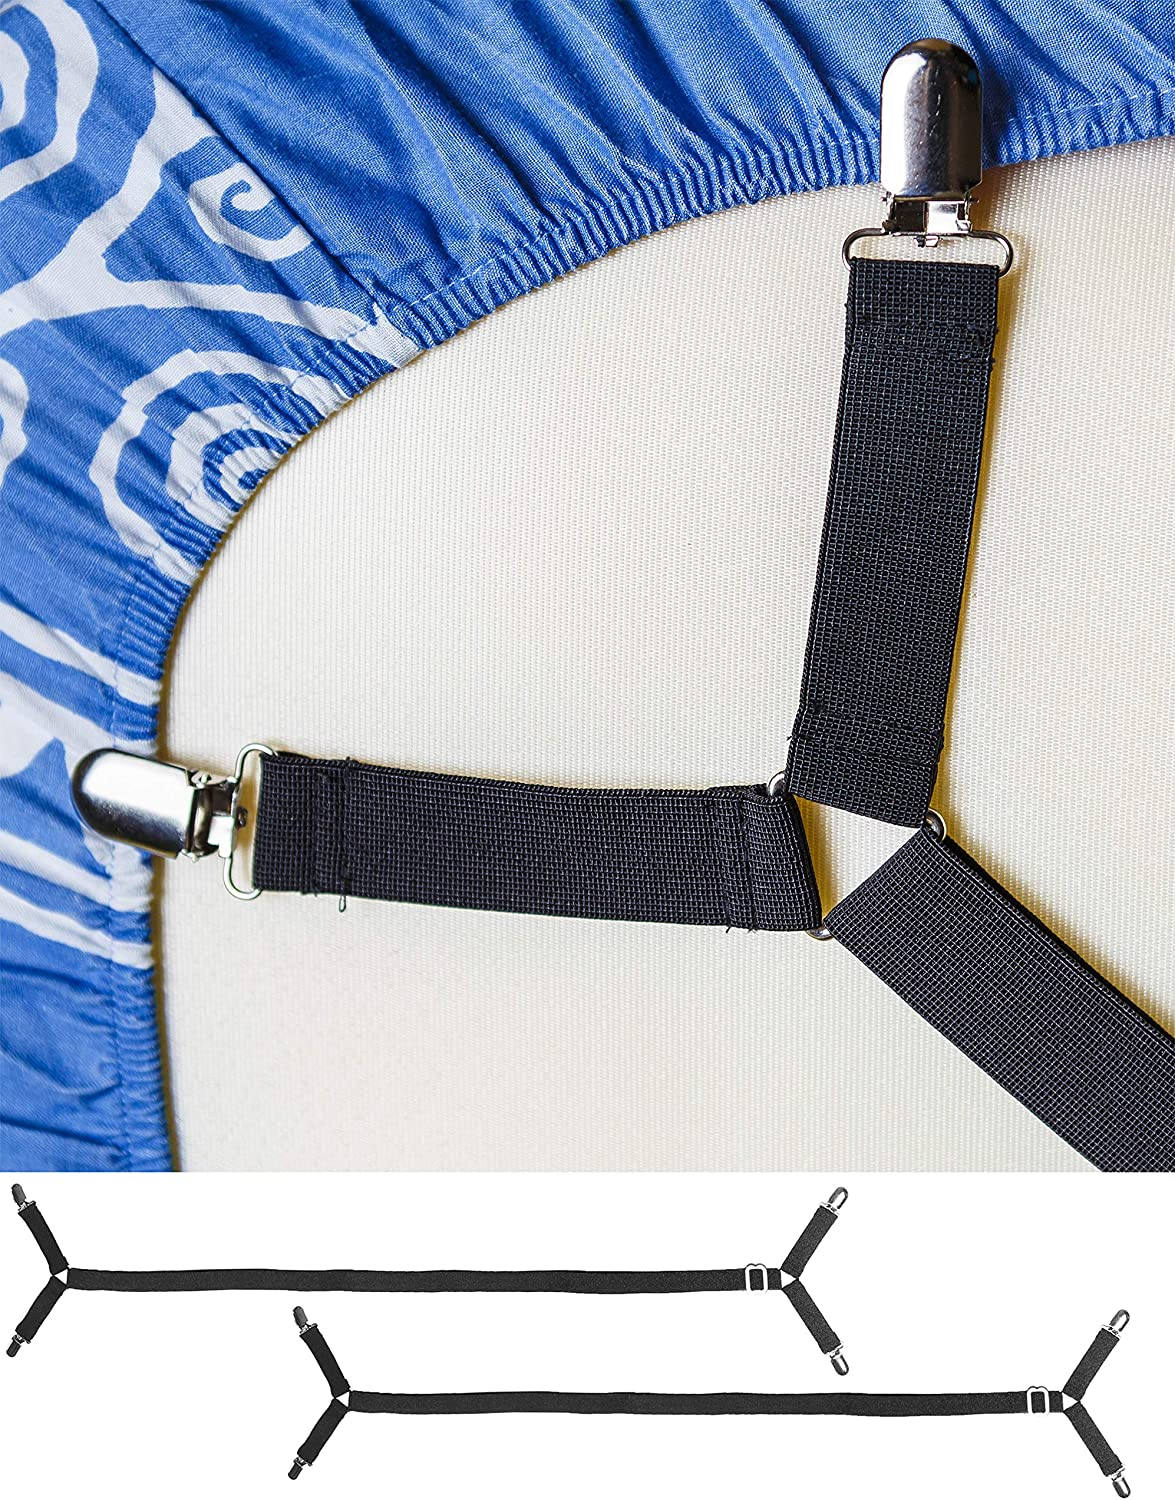 FeelAtHome Bed Sheet Holder Straps Criss-Cross - Pack of 2 Bedsheet Straps Suspenders - Grippers Fasteners Hold Bedsheets in Place - Adjustable Elastic Clips Garters - Fitted Flat Mattress Corners: Home & Kitchen